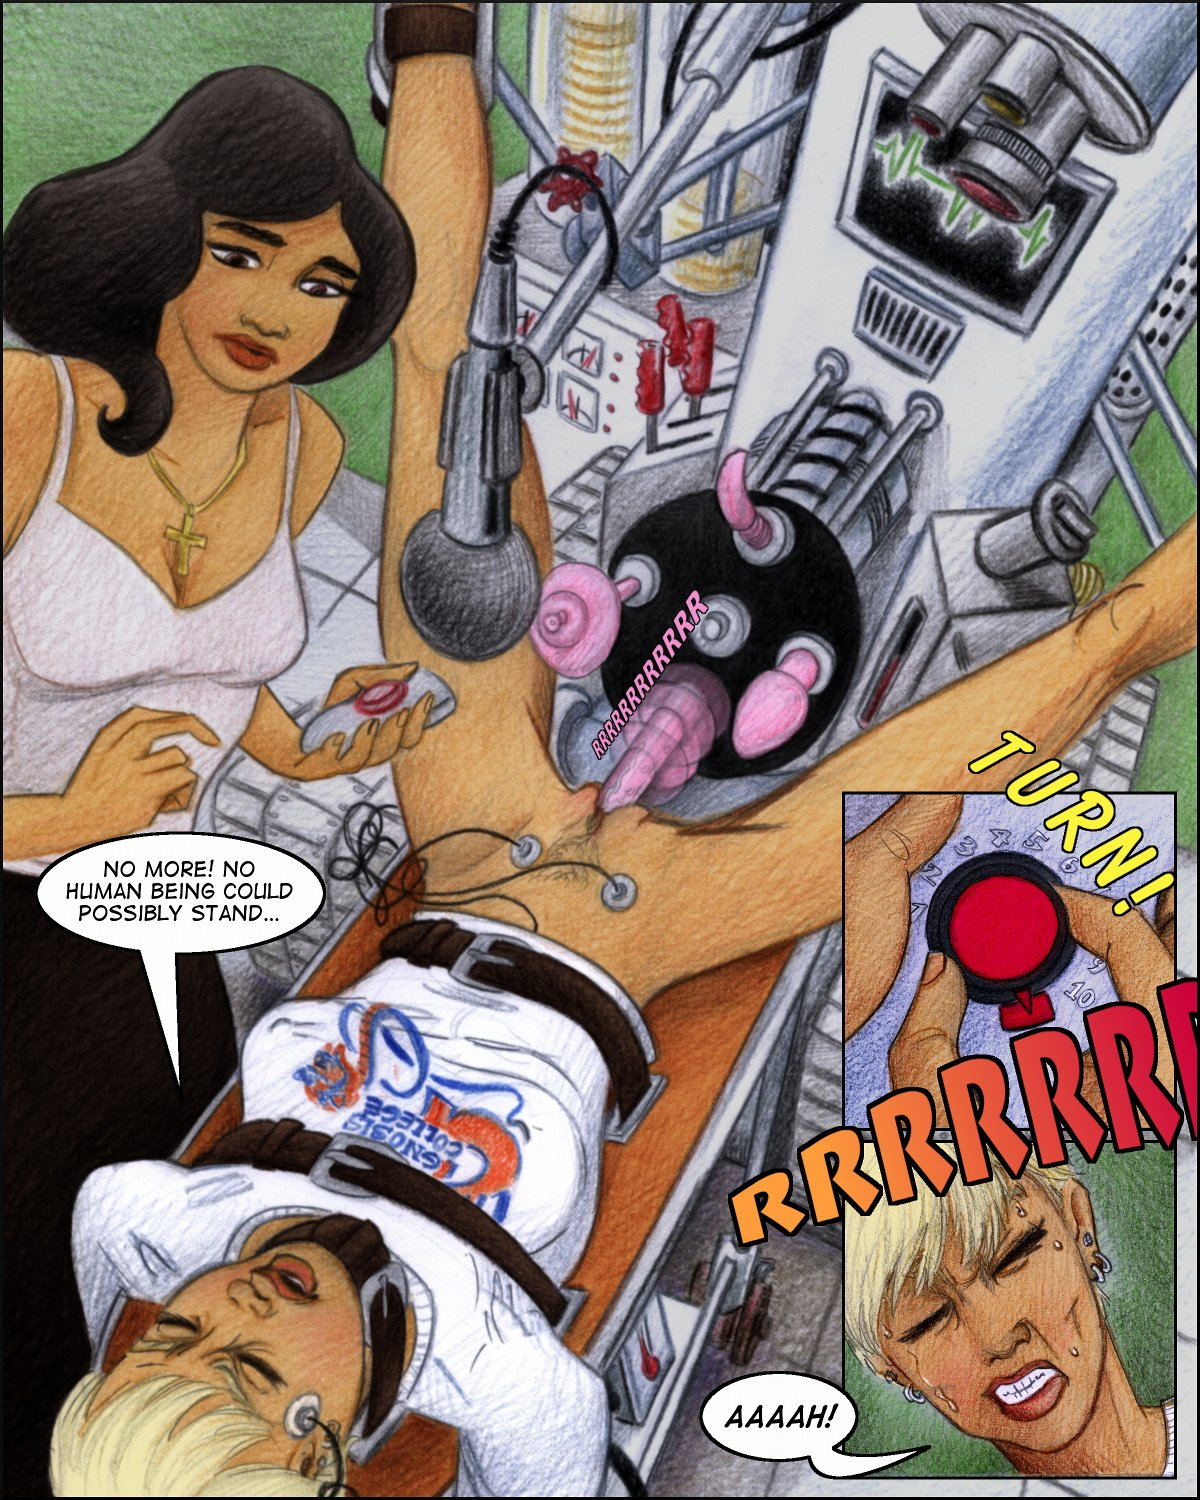 Jill strapped down and fucked by a sex machine controlled by Maria.